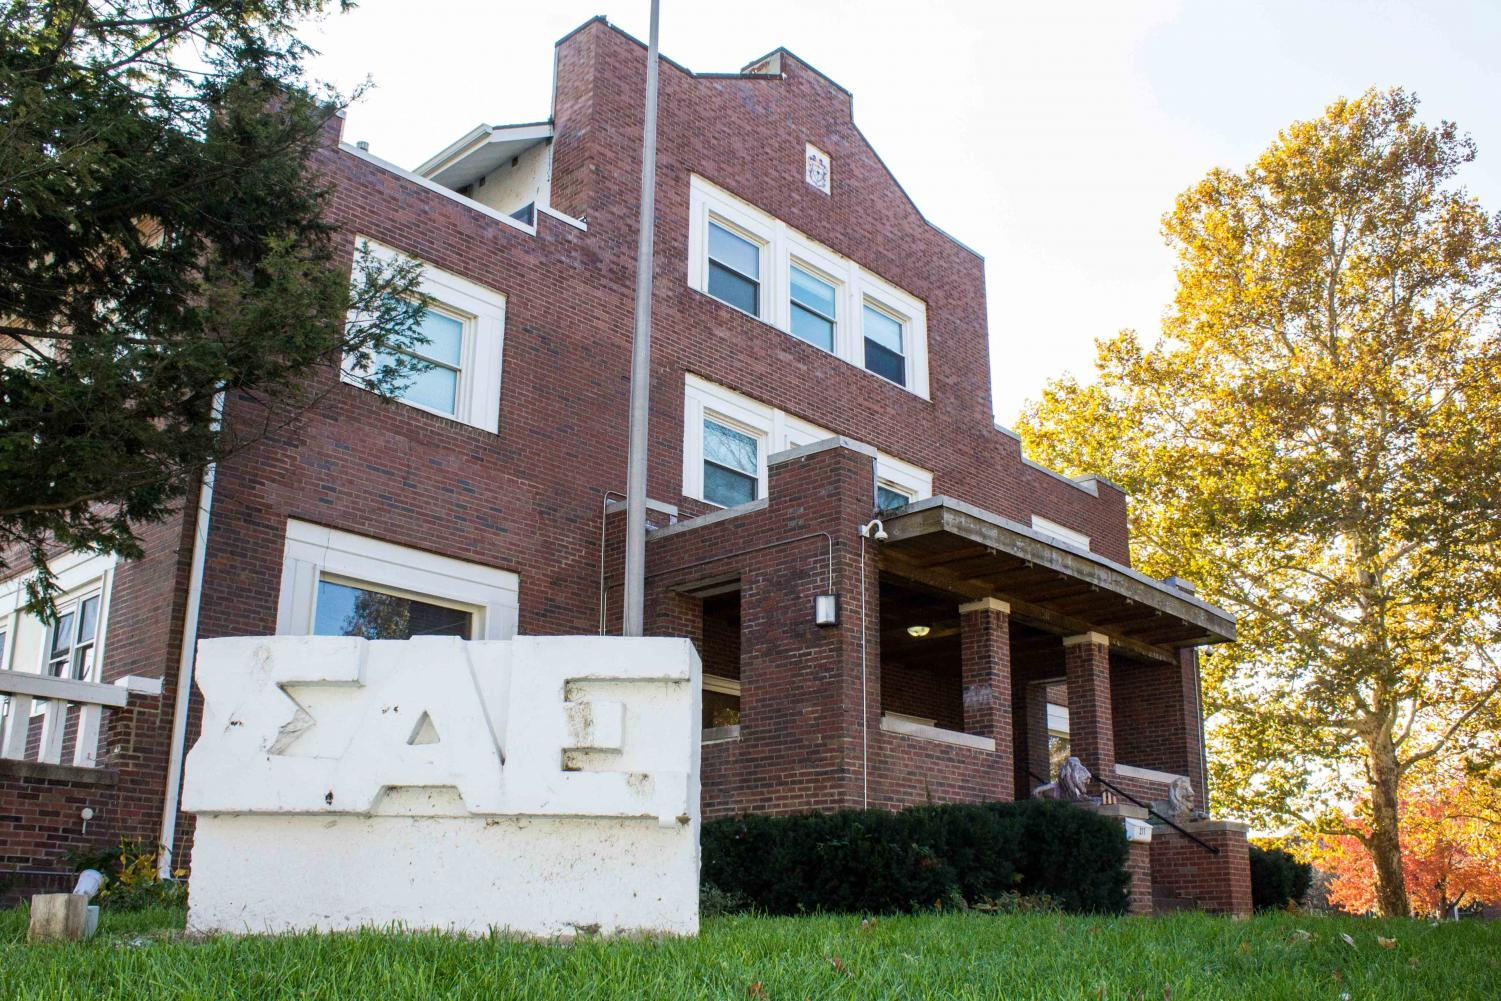 Sigma Alpha Epsilon fraternity house located at 211 East Daniels St.